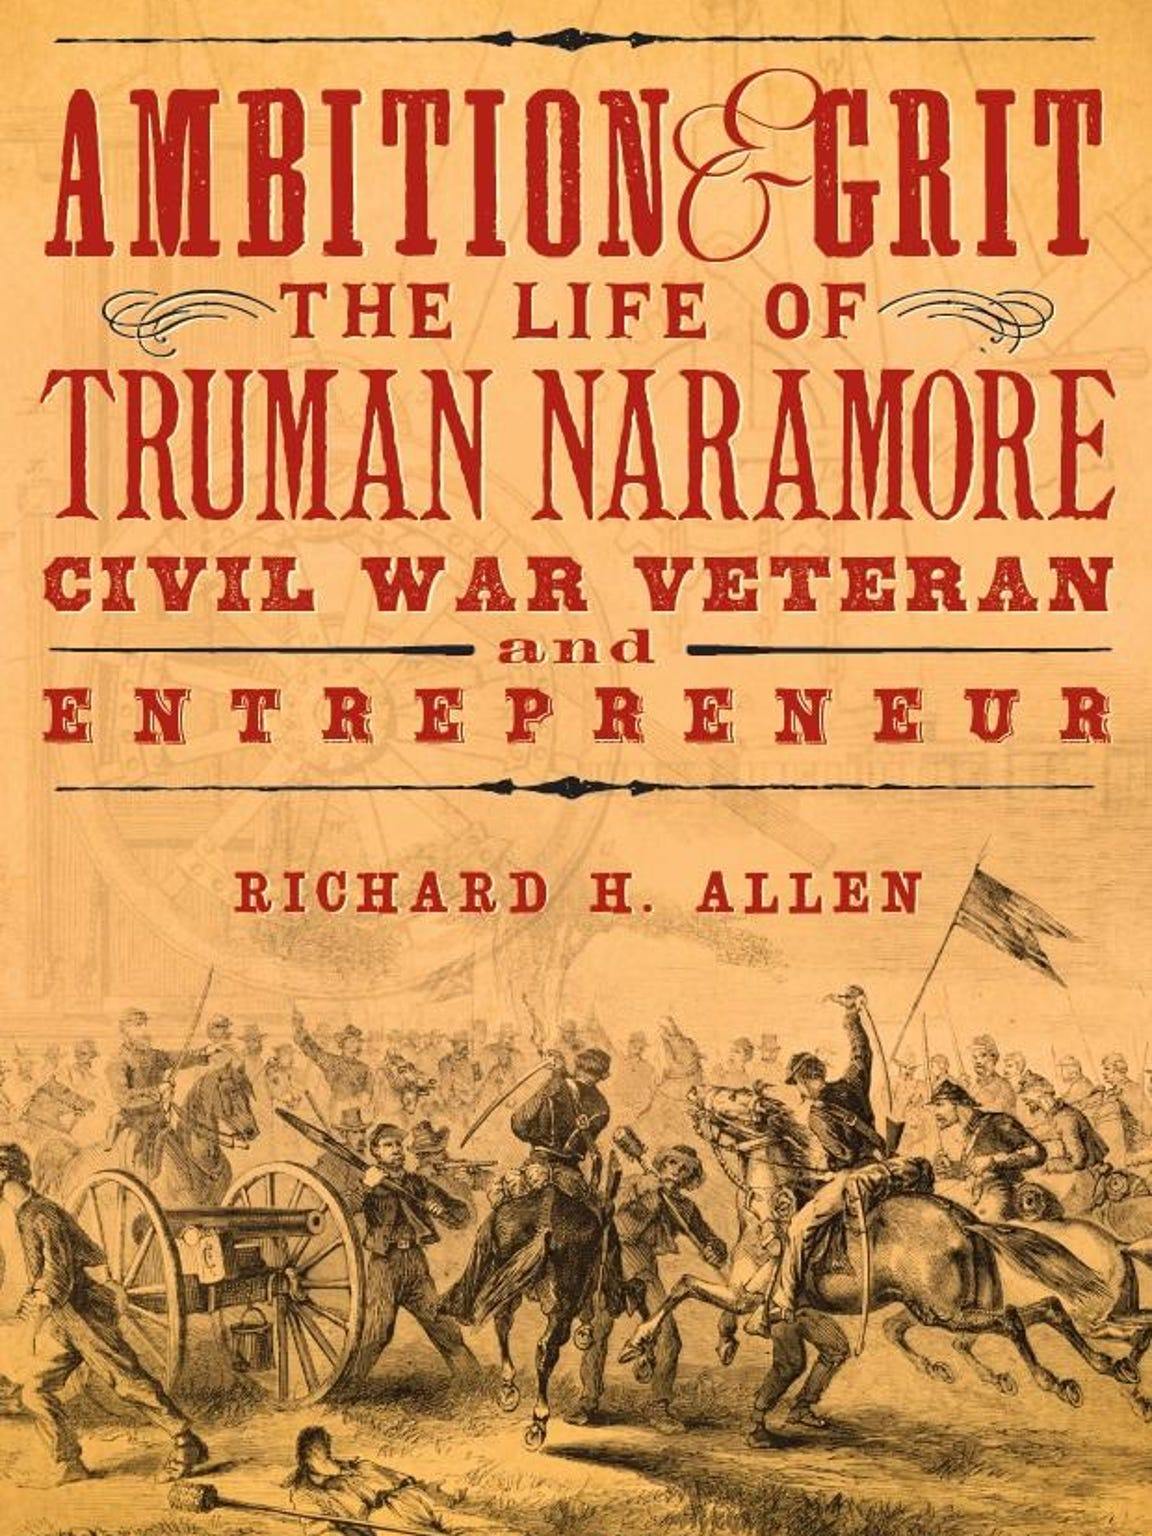 The front cover of Richard H. Allen's book on Truman